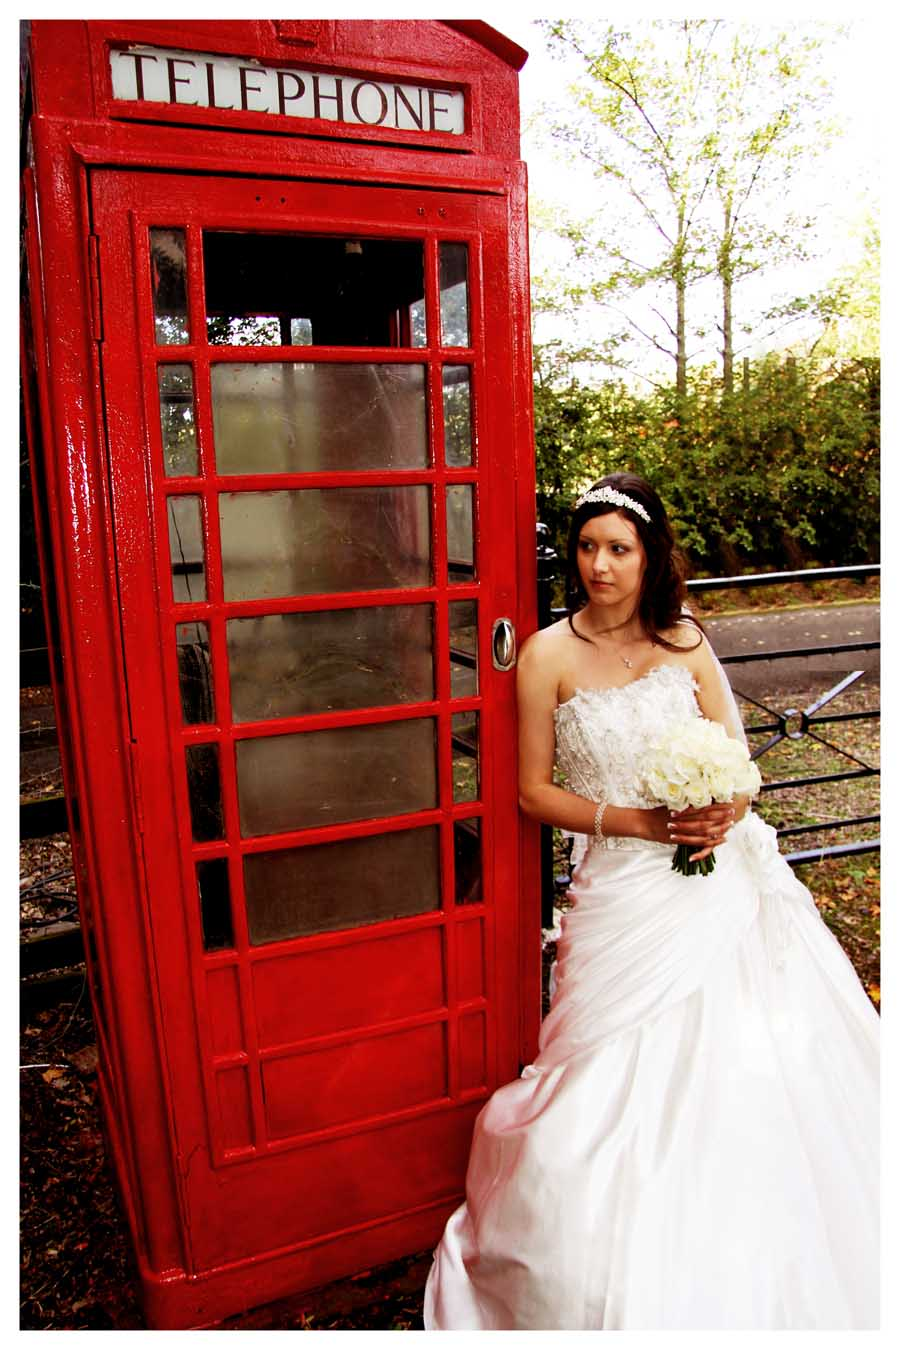 BRIDE Photos by Simeon Thaw copyright 2014 (89).jpg